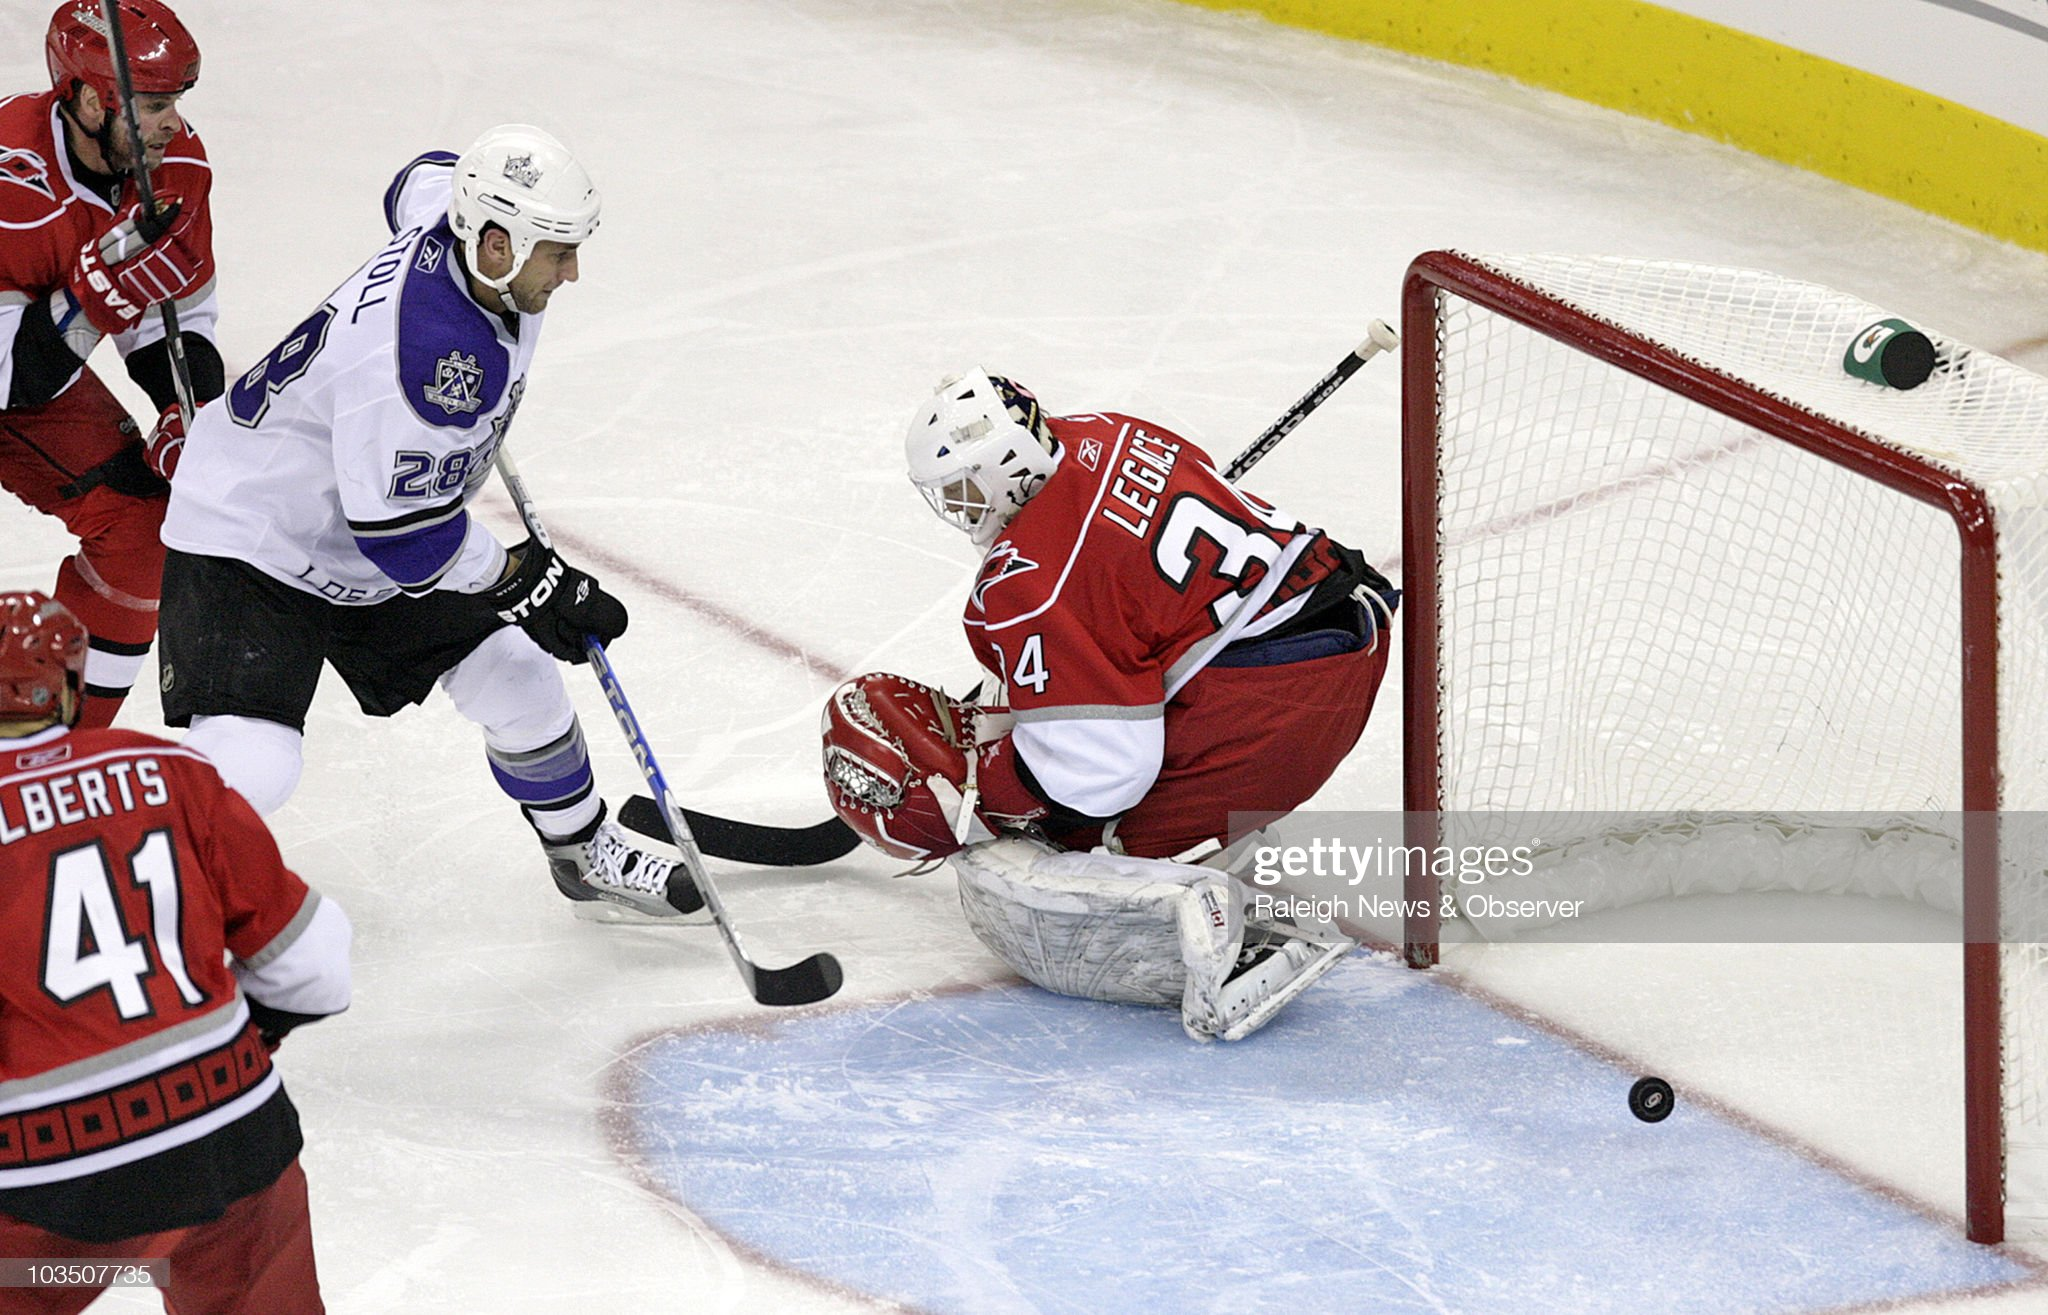 los-angeles-kings-jarret-stoll-puts-the-